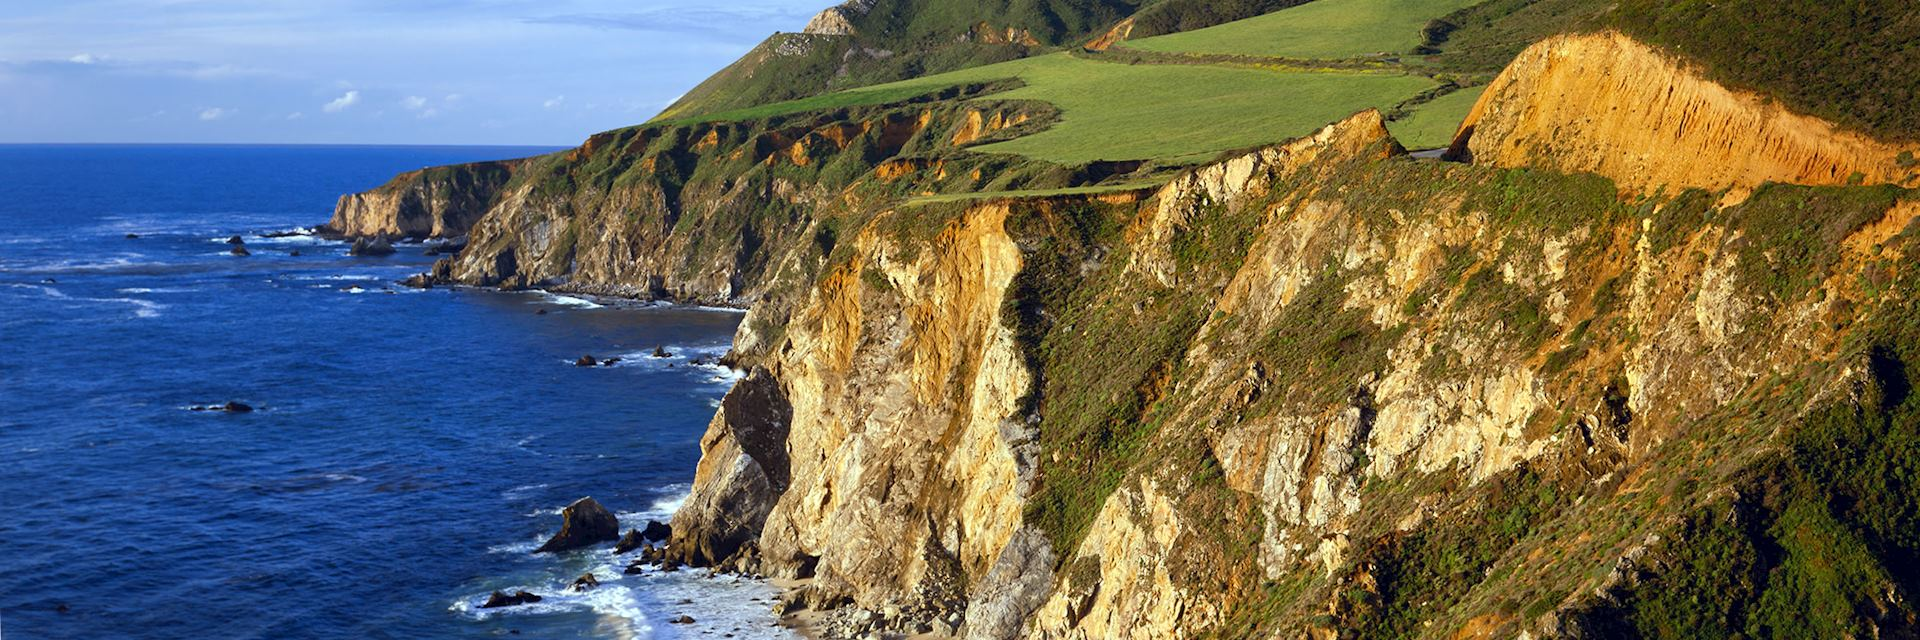 Enjoy dramatic coastal views at Big Sur